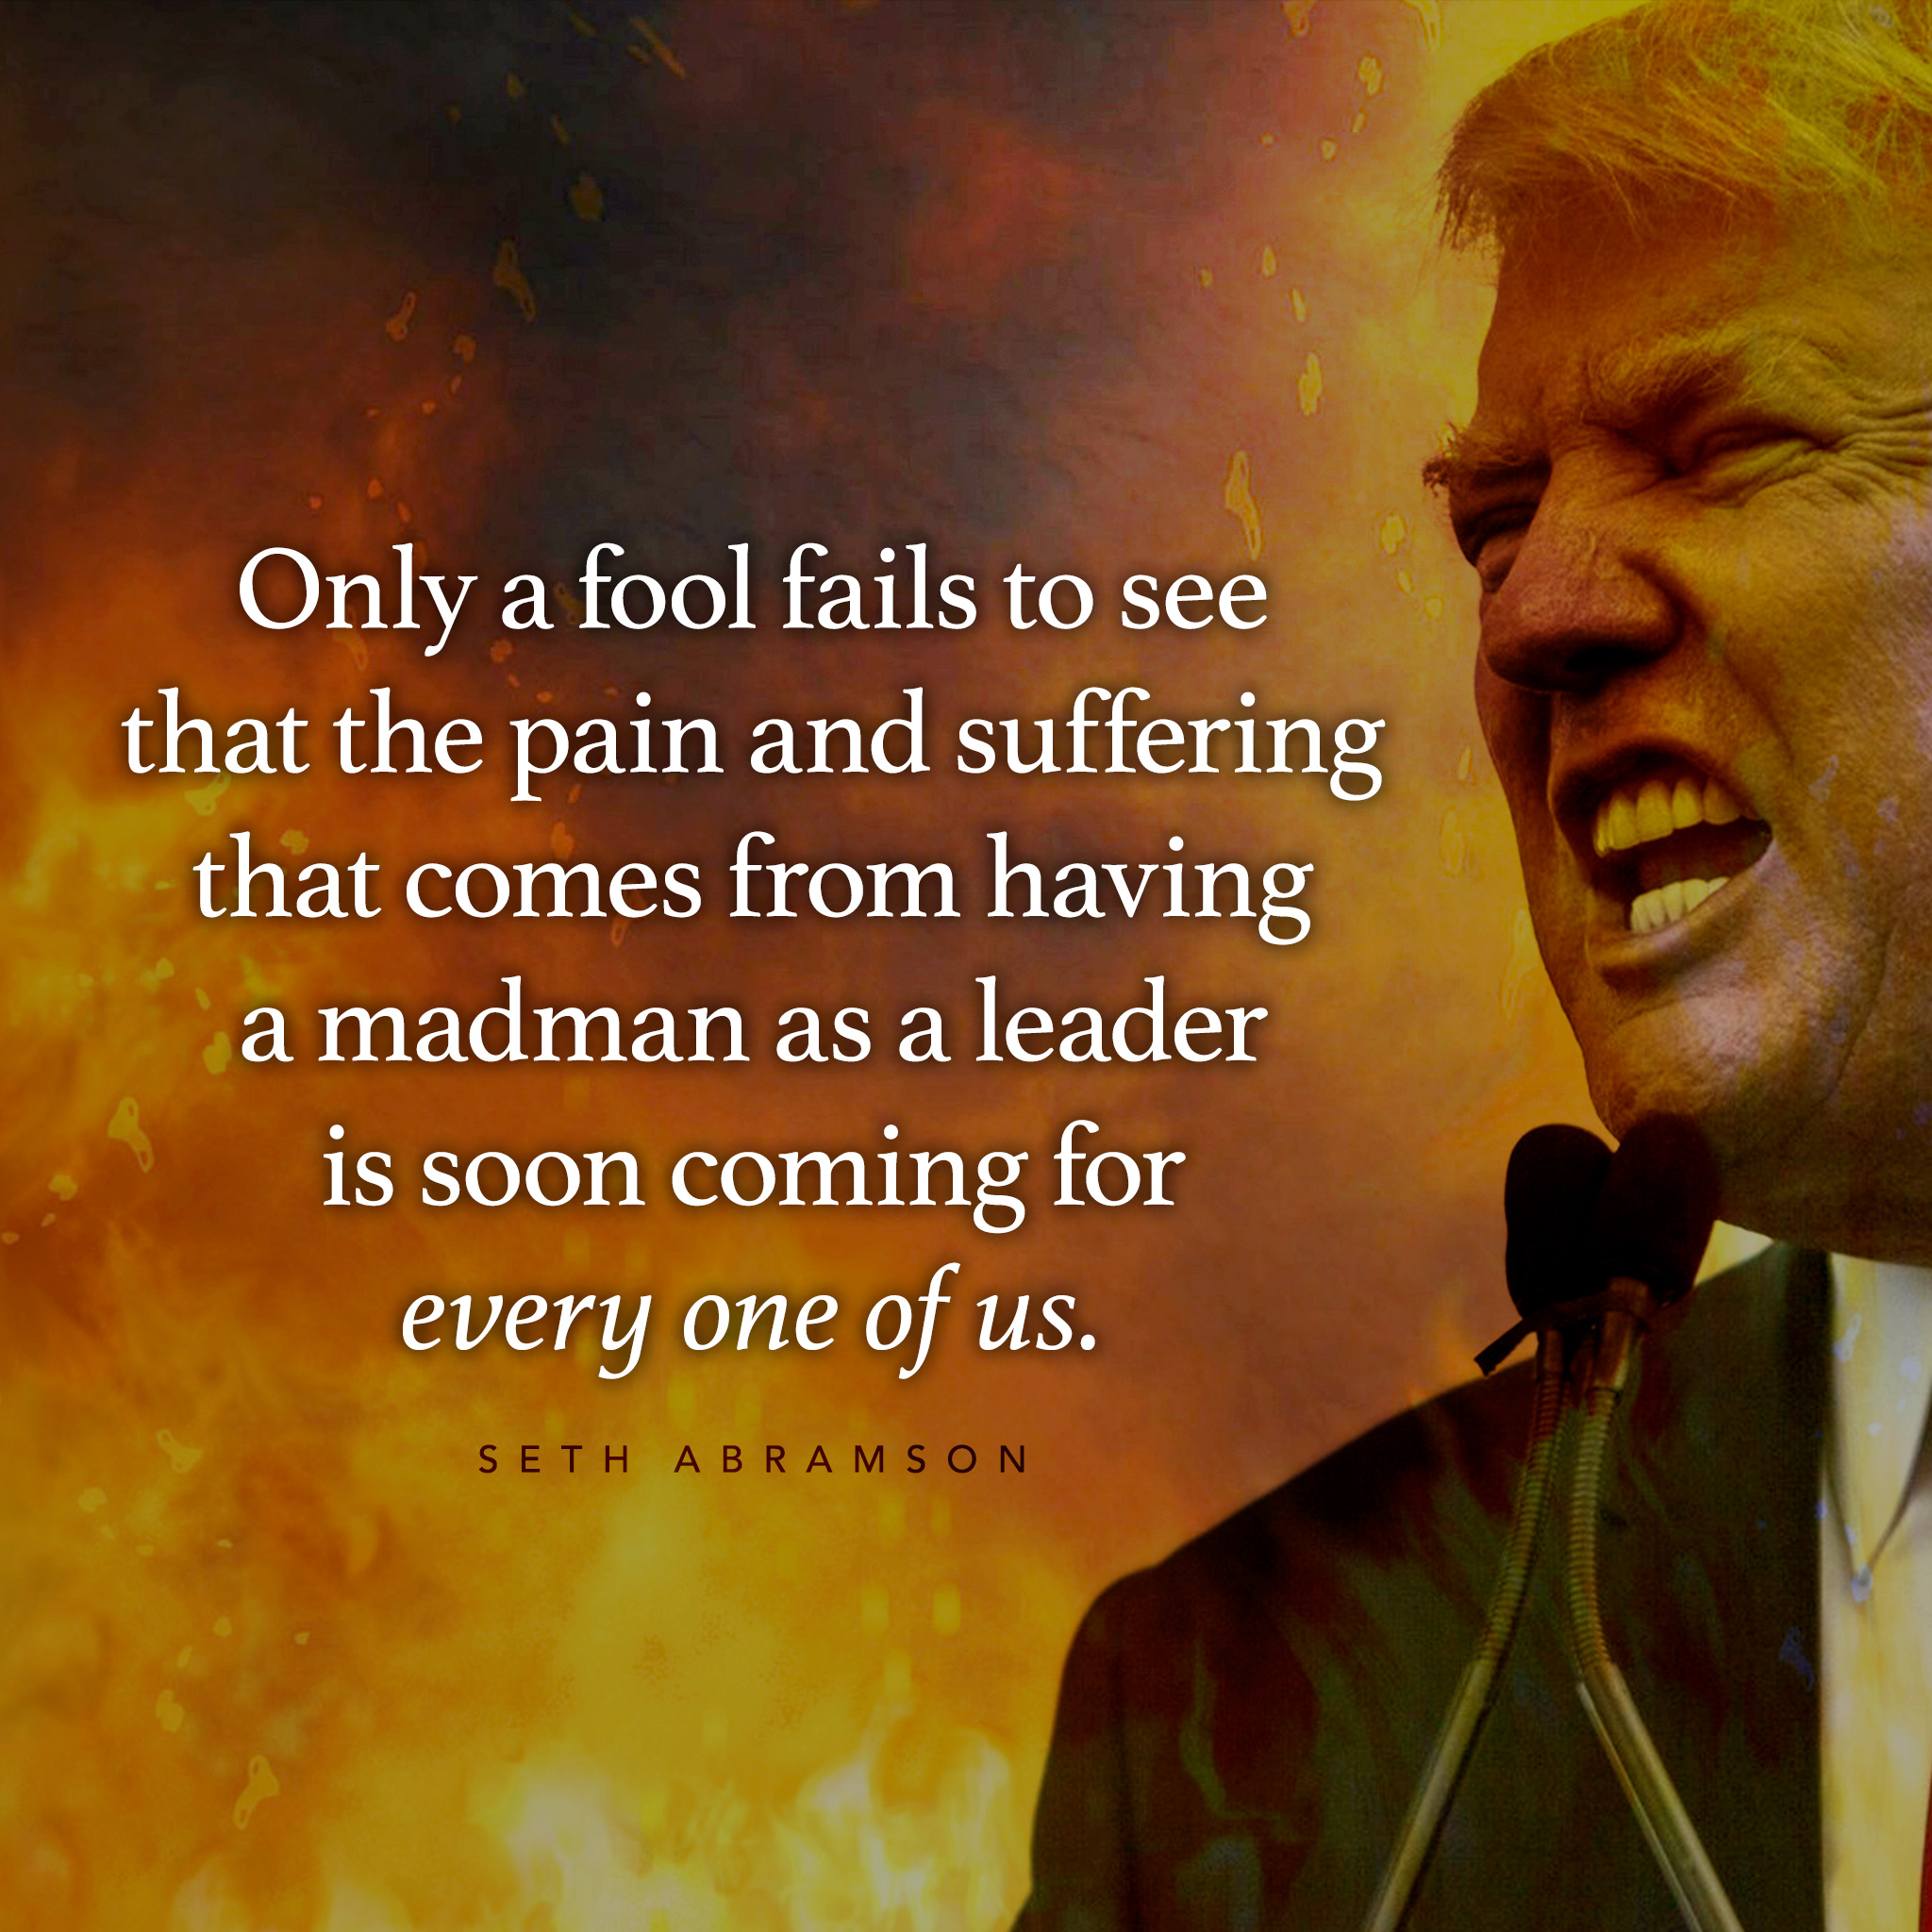 """Only a fool fails to see that the pain and suffering that comes from having a madman as a leader is soon coming for every one of us."" –Seth Abramson [2048×2048]"